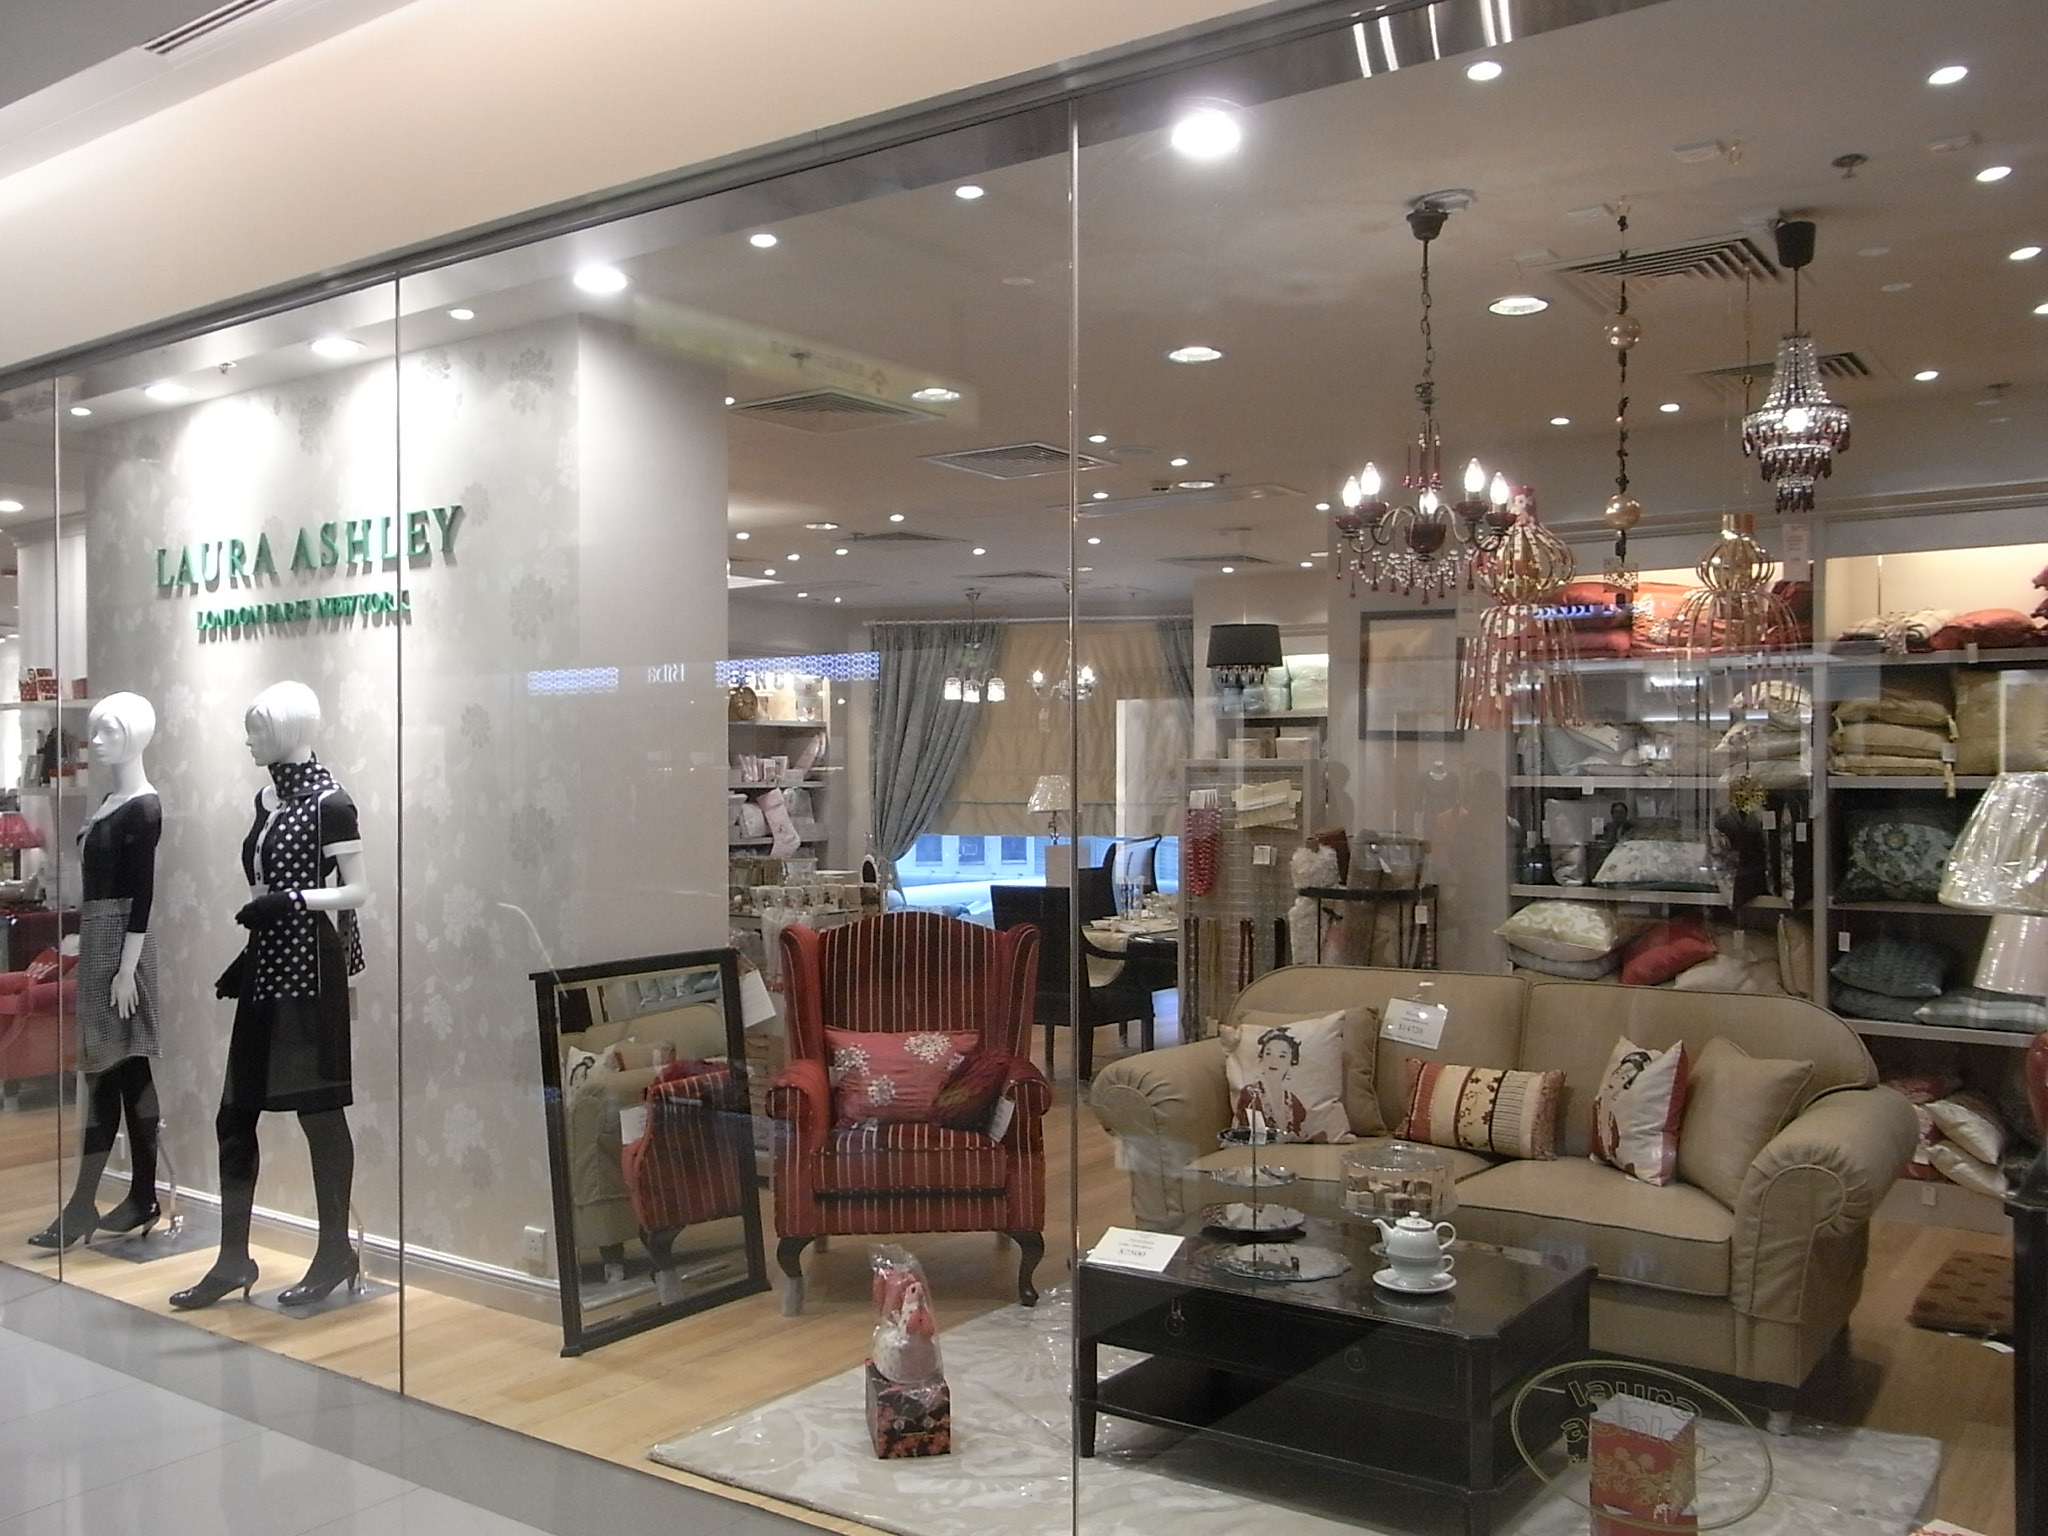 Laura Ashley Furniture Store Locations